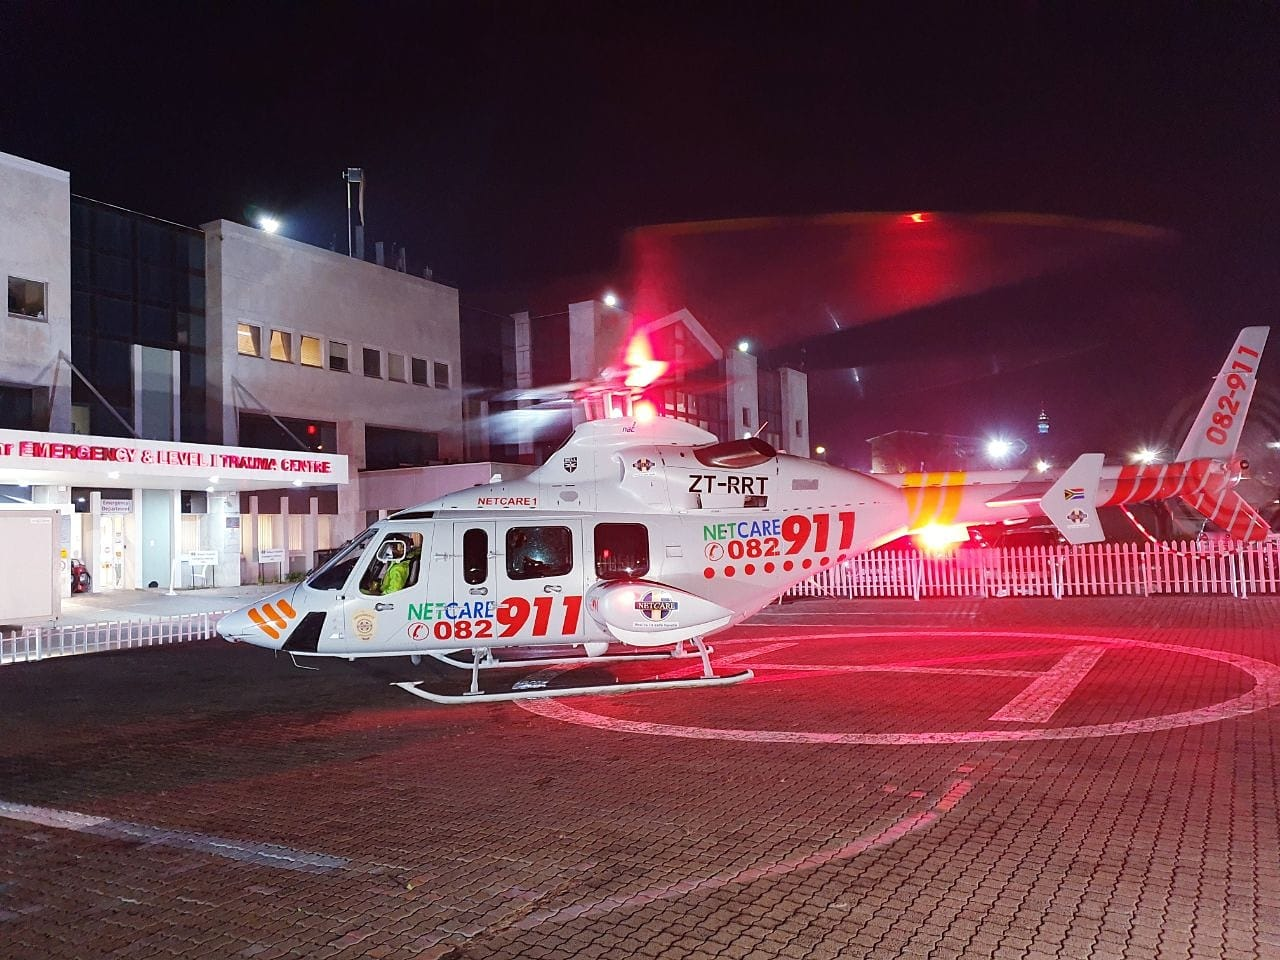 Gauteng Helicopter Emergency Medical Services: Netcare 1 a specialised helicopte… 117641369 3330362766984836 2215400592621027846 o